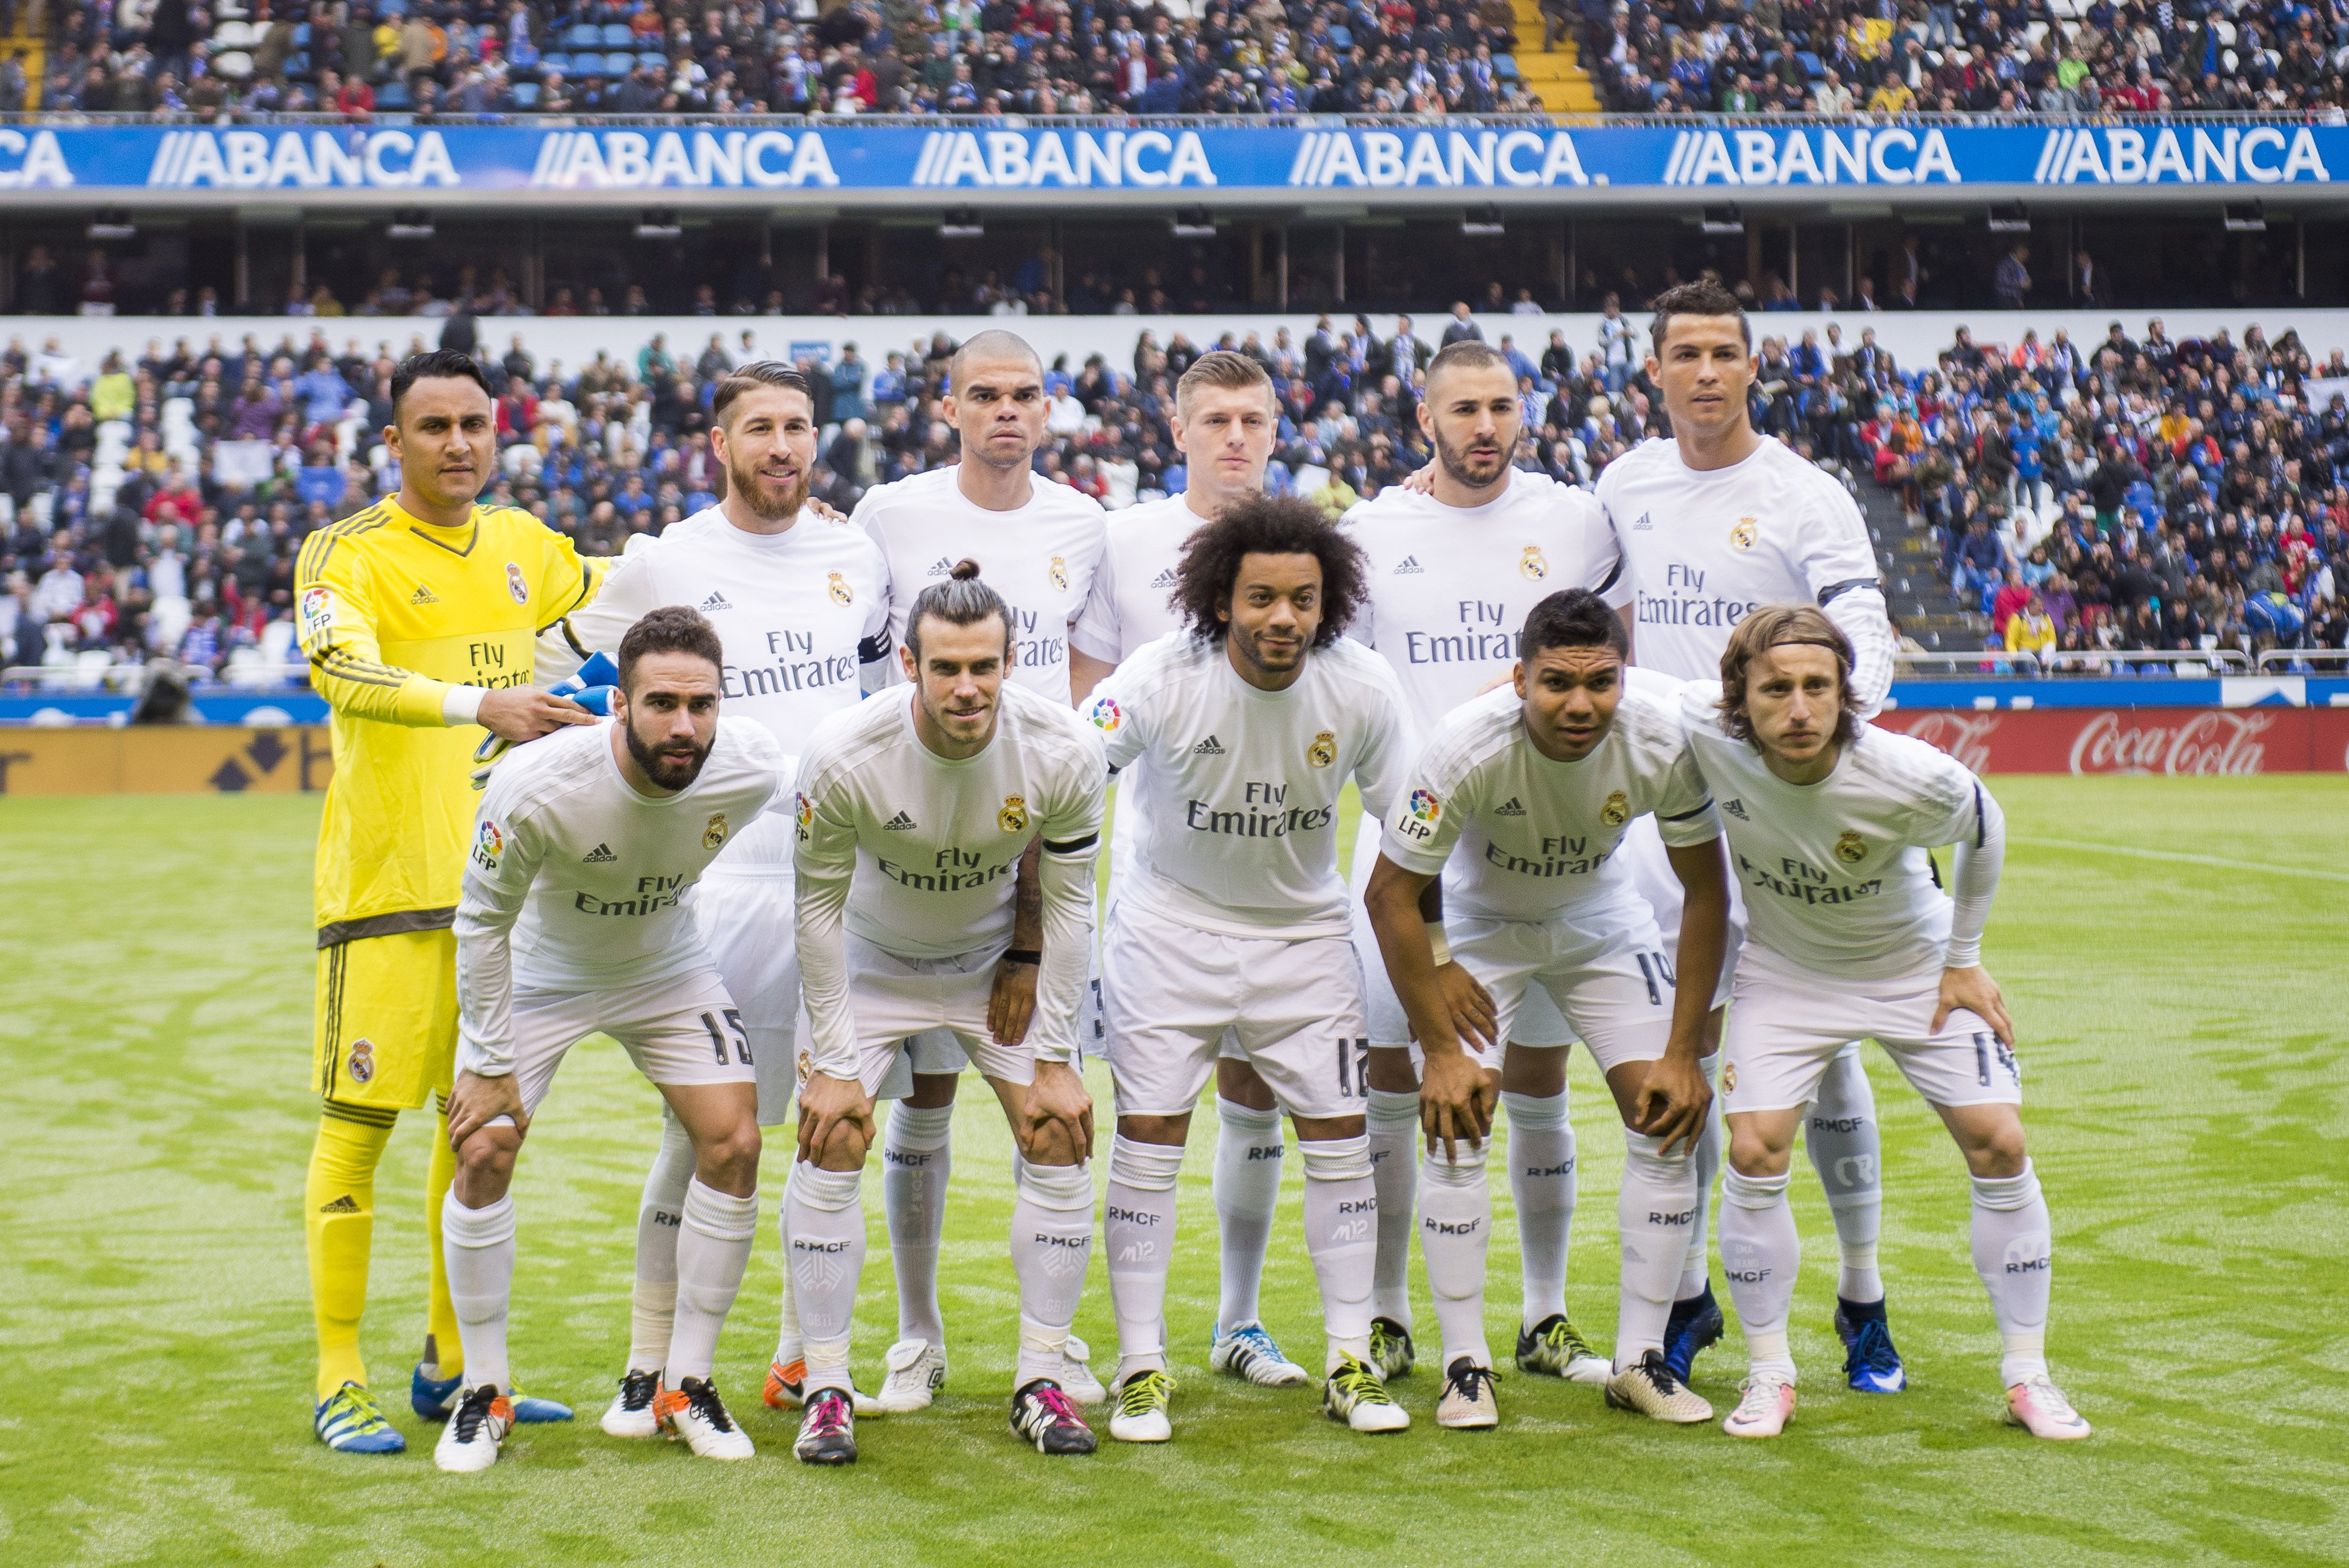 LA CORUNA, SPAIN - MAY 14:  Real Madrid line up for a team photo prior to the start the La Liga match between RC Deportivo La Coruna and Real Madrid CF at Riazor Stadium on May 14, 2016 in La Coruna, Spain.  (Photo by Juan Manuel Serrano Arce/Getty Images)